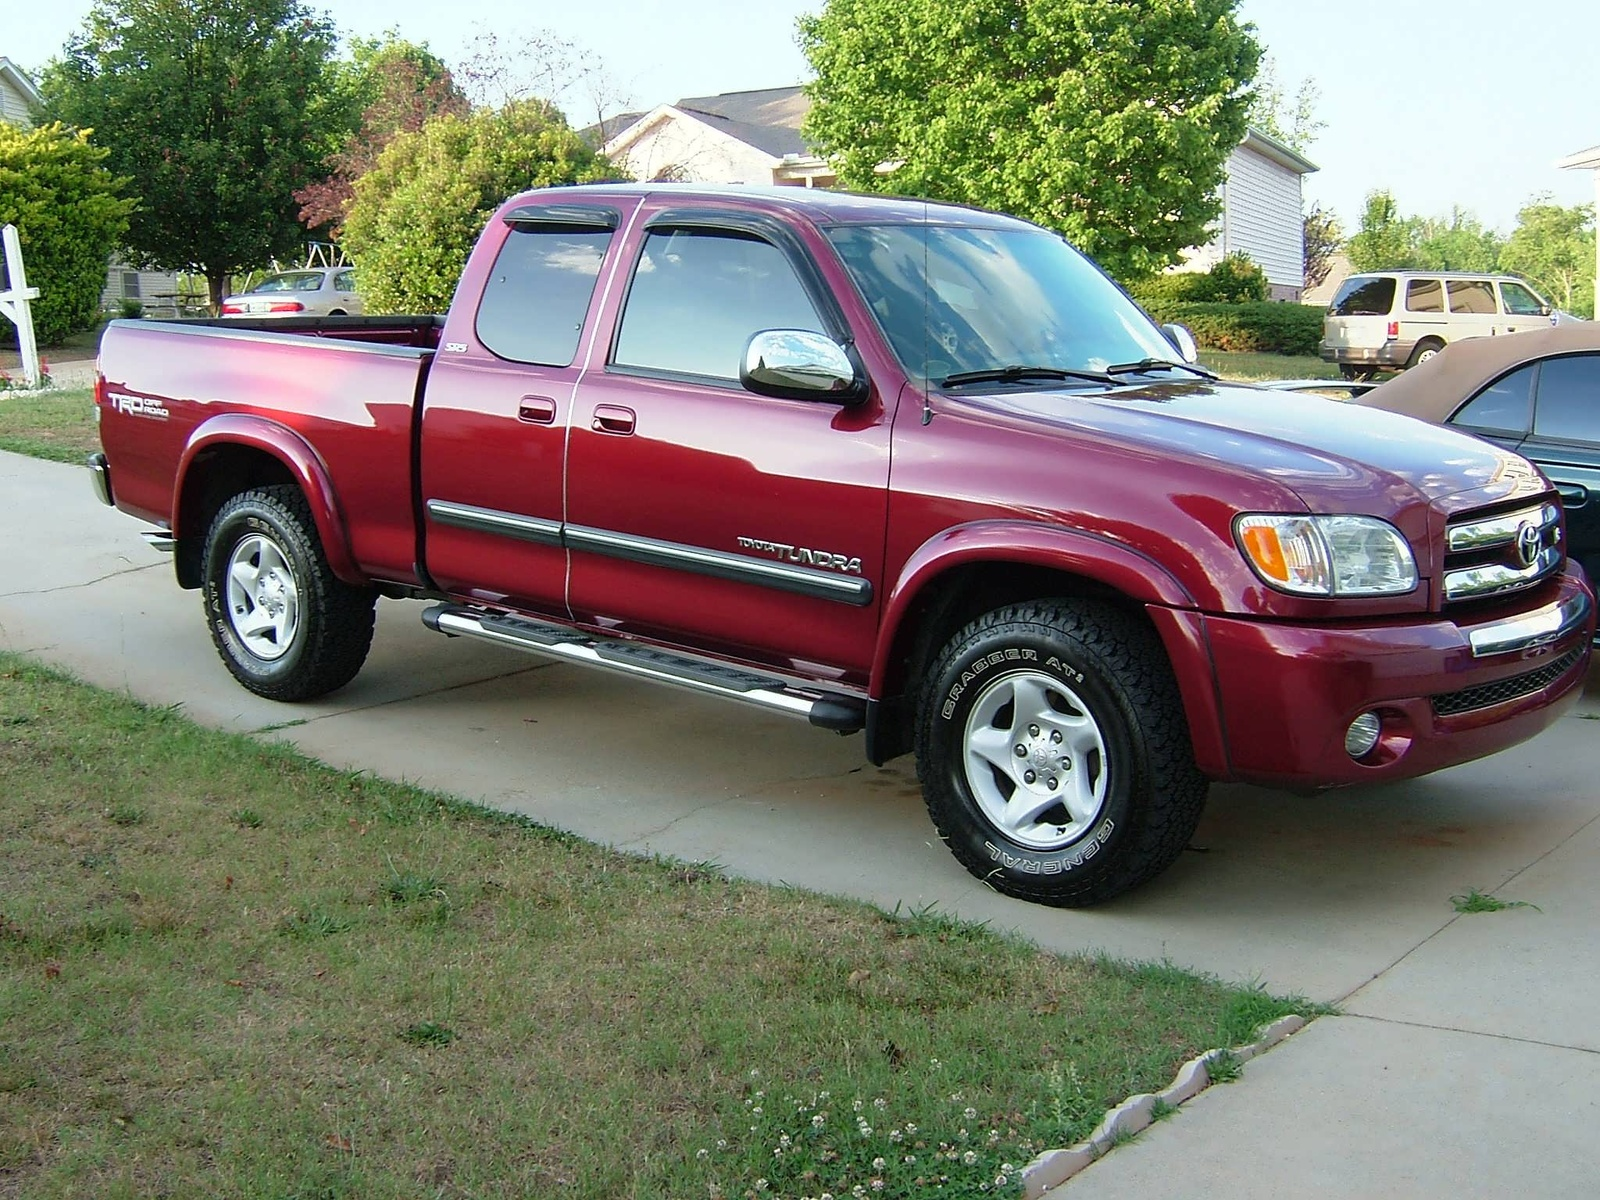 Picture of 2004 toyota tundra 4 dr sr5 v8 extended cab sb exterior